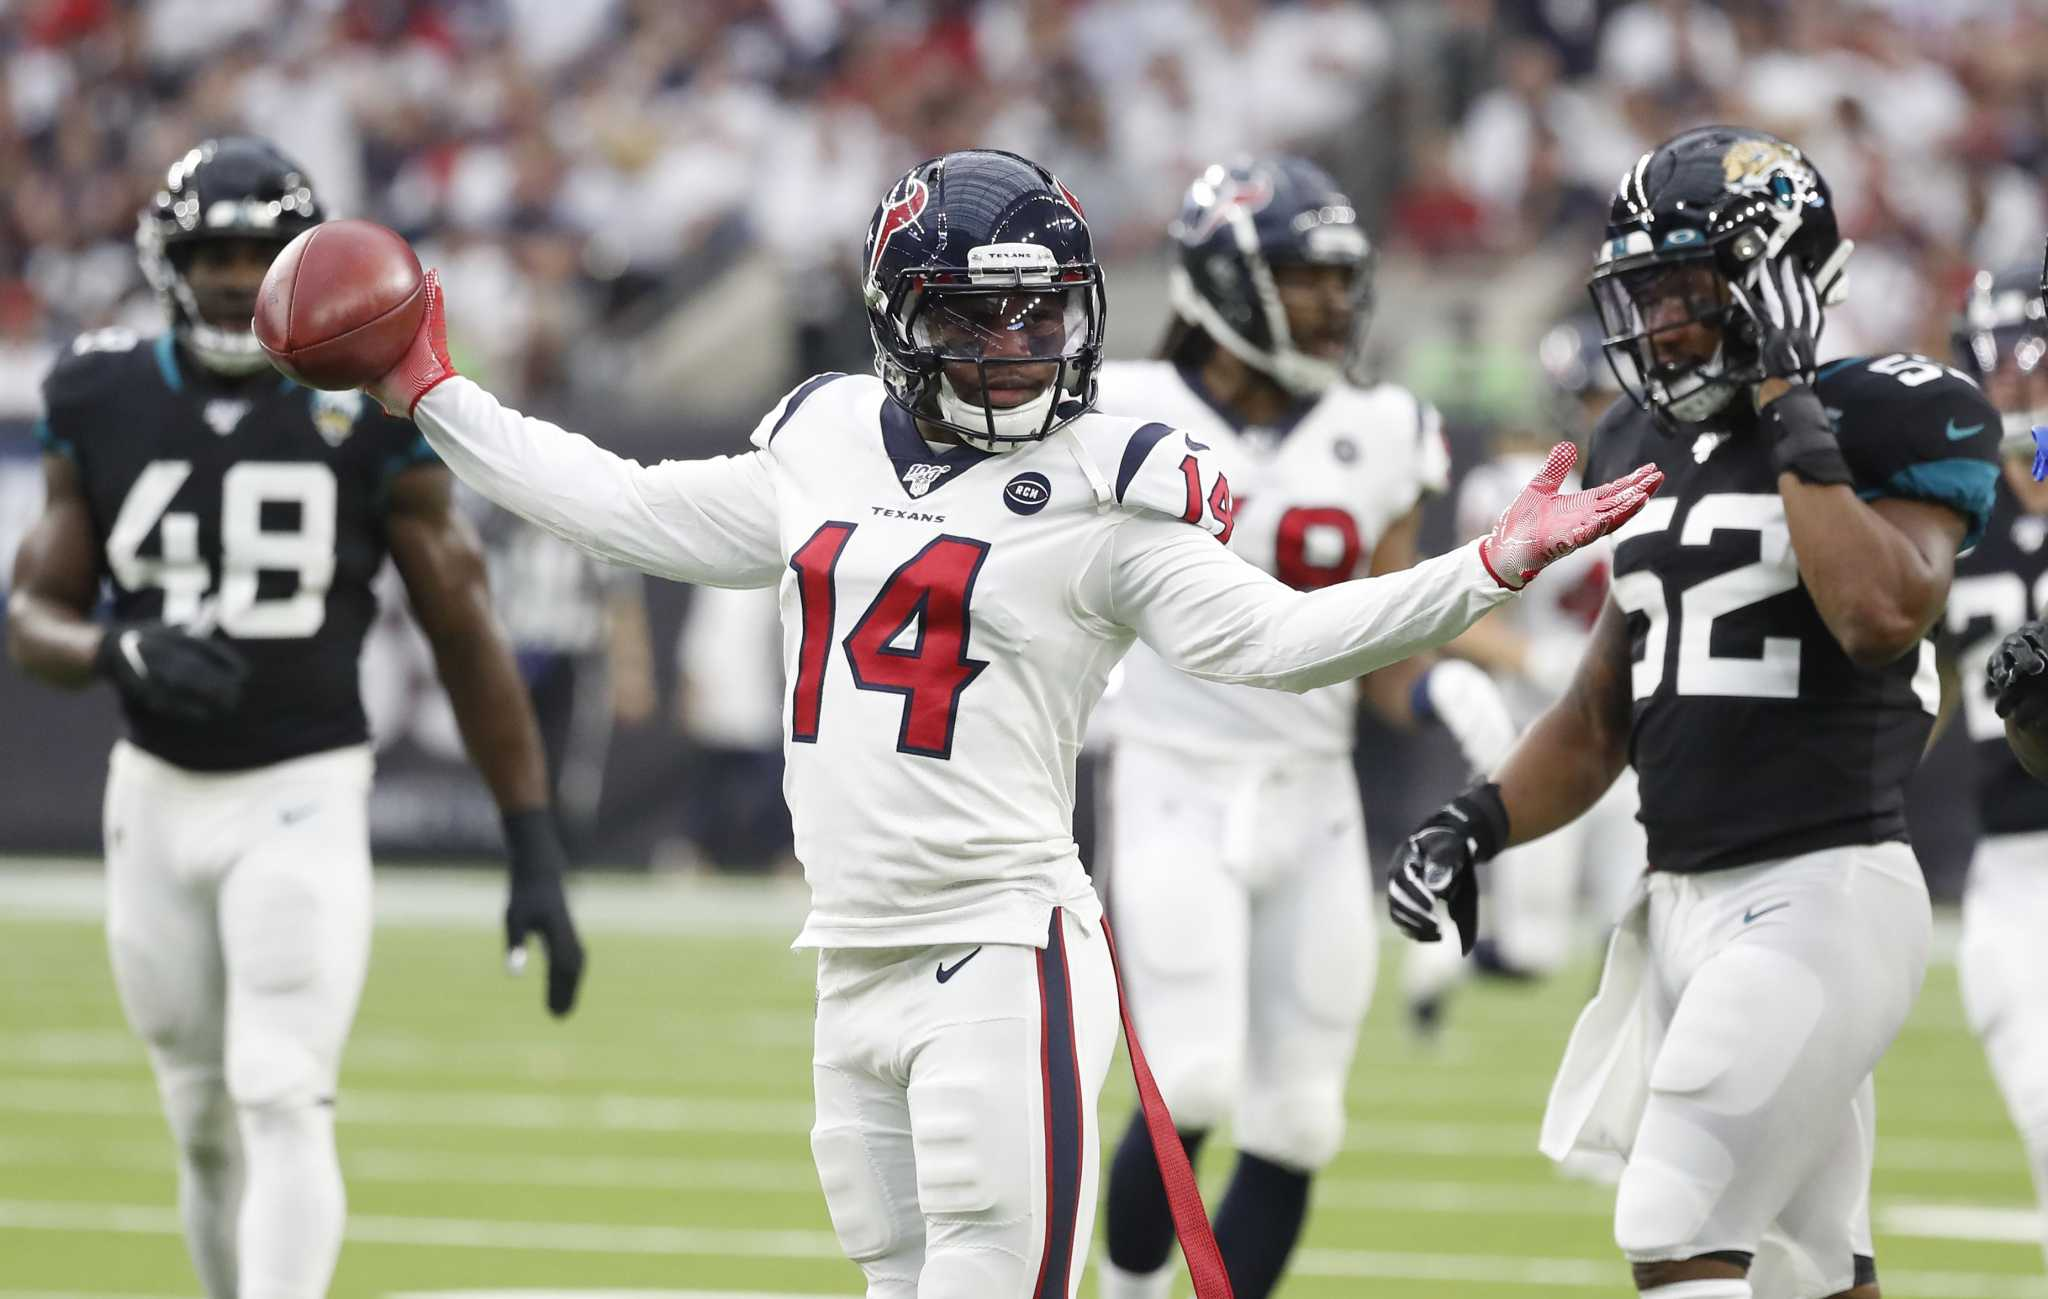 Win puts Texans in a dancing mood during Monday's workouts